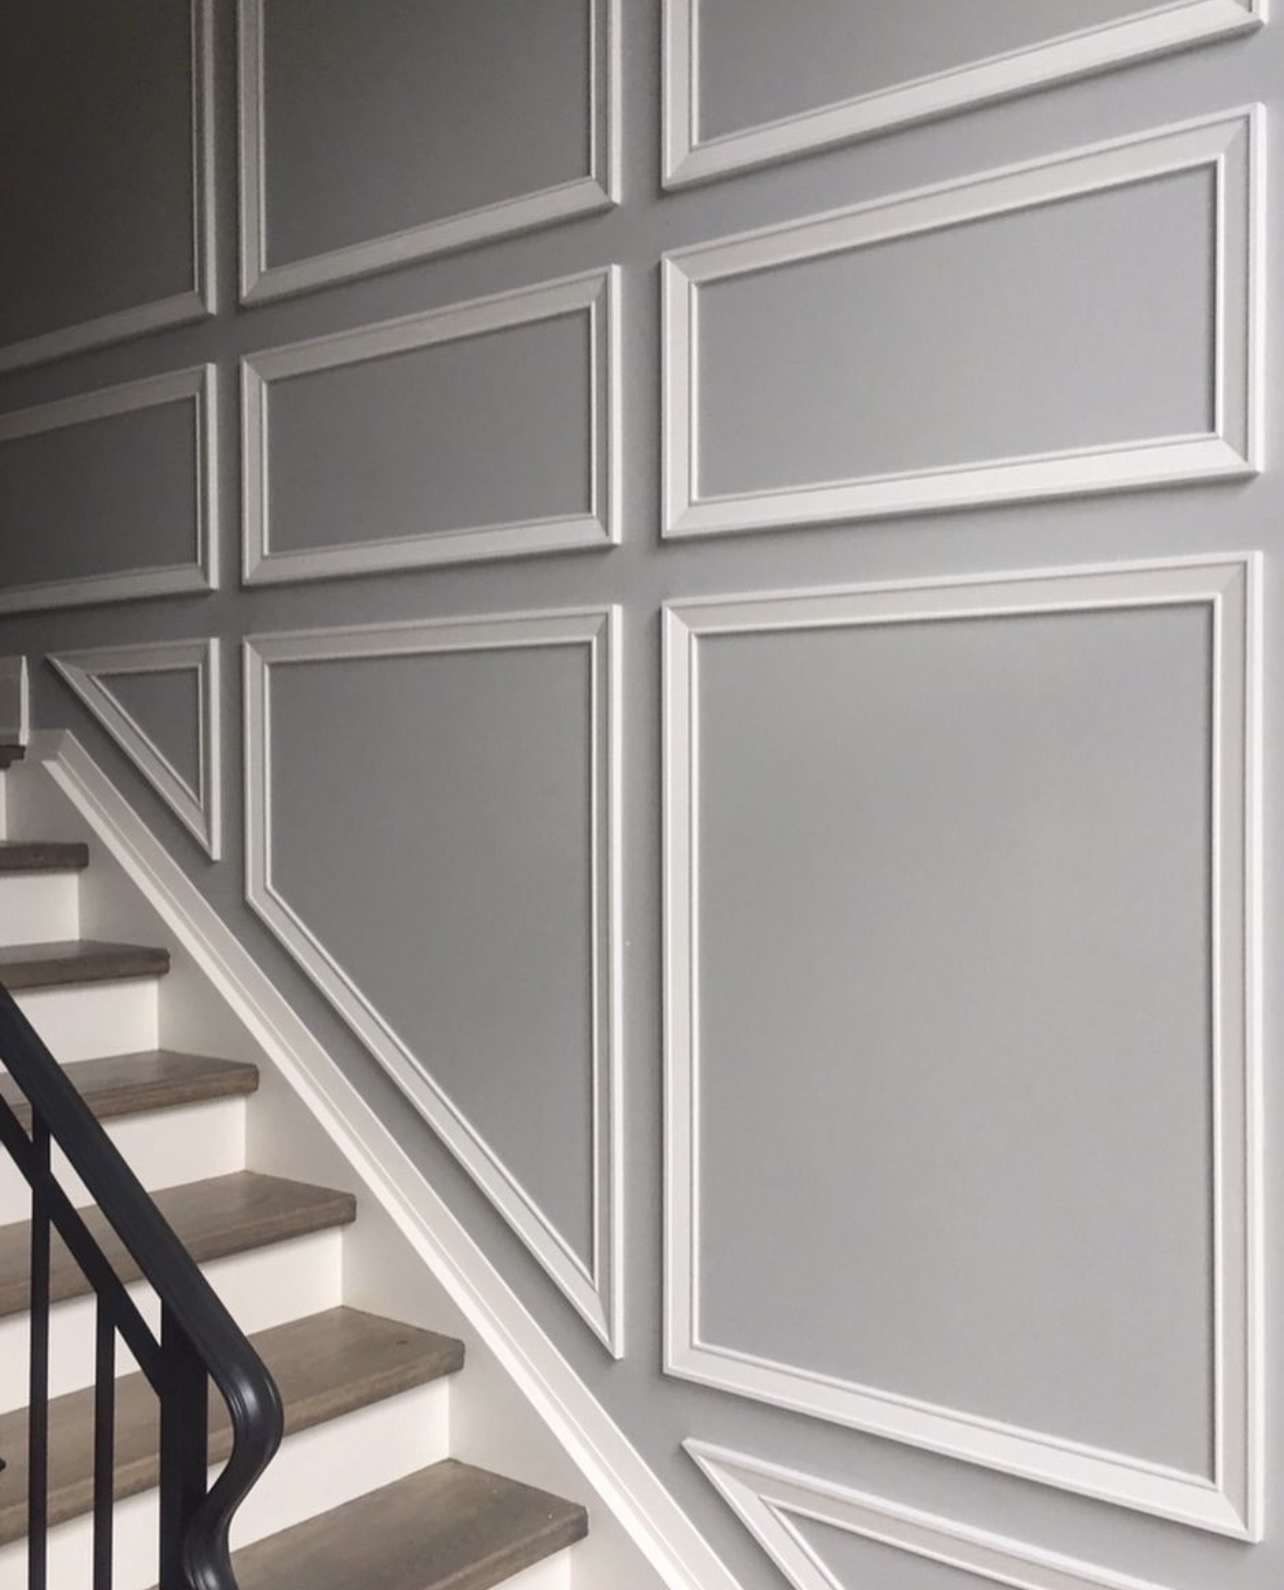 Elegant wainscoting design with millwork supplied by Biiibo.